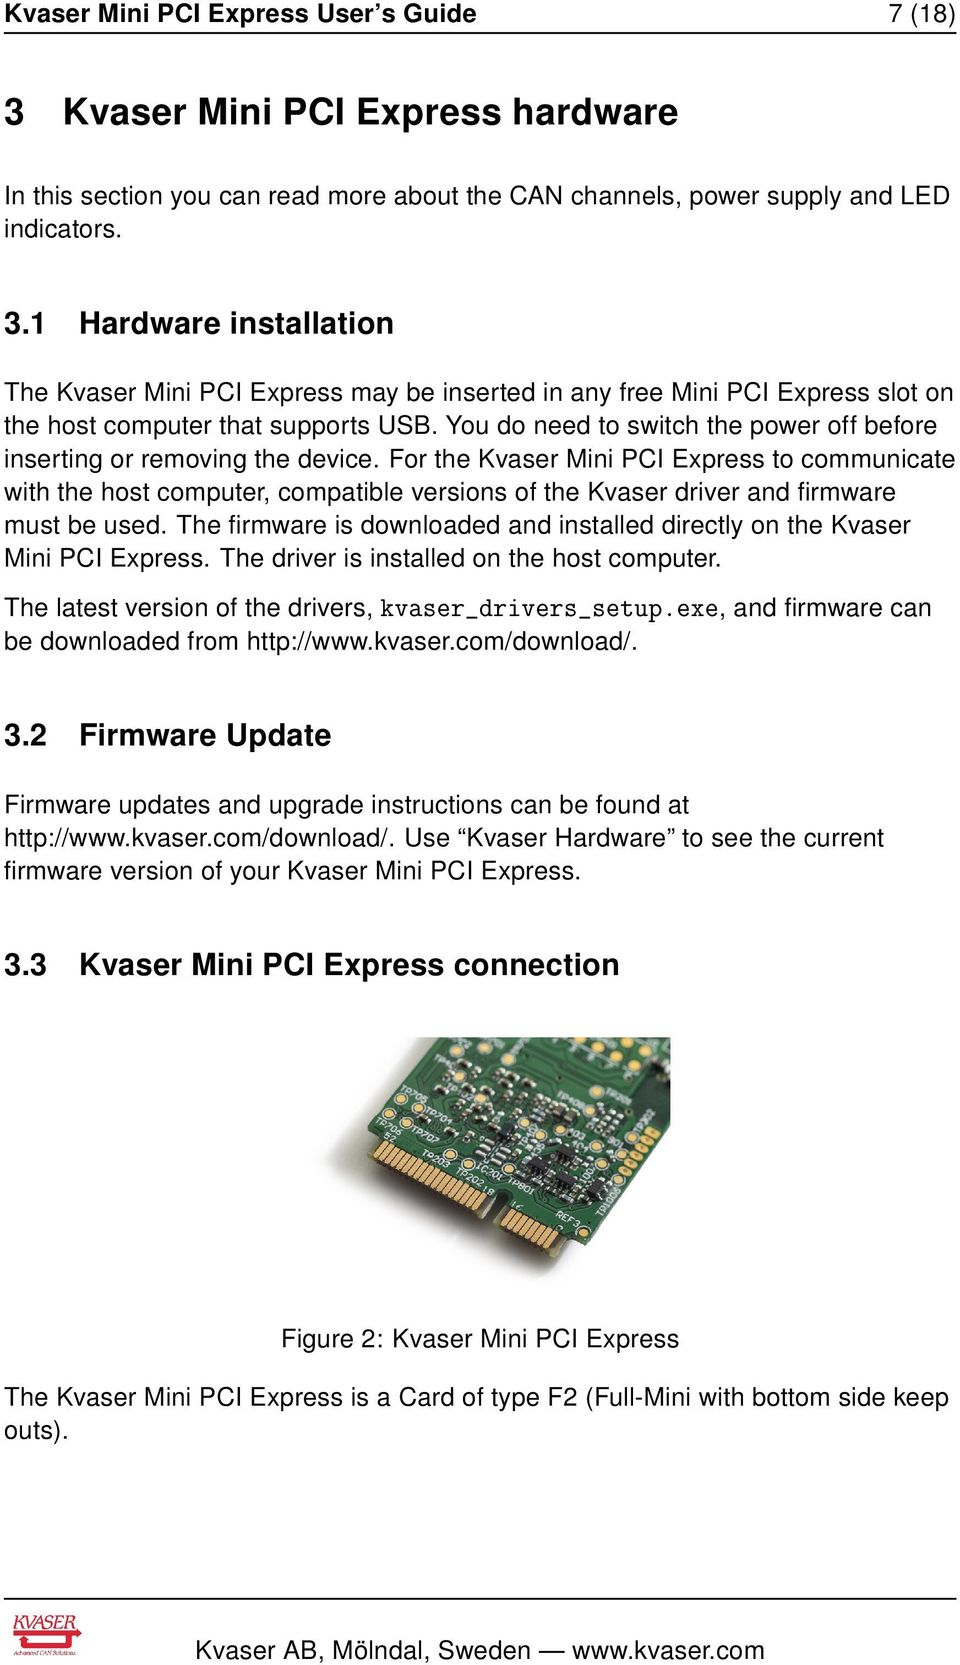 For the Kvaser Mini PCI Express to communicate with the host computer, compatible versions of the Kvaser driver and firmware must be used.